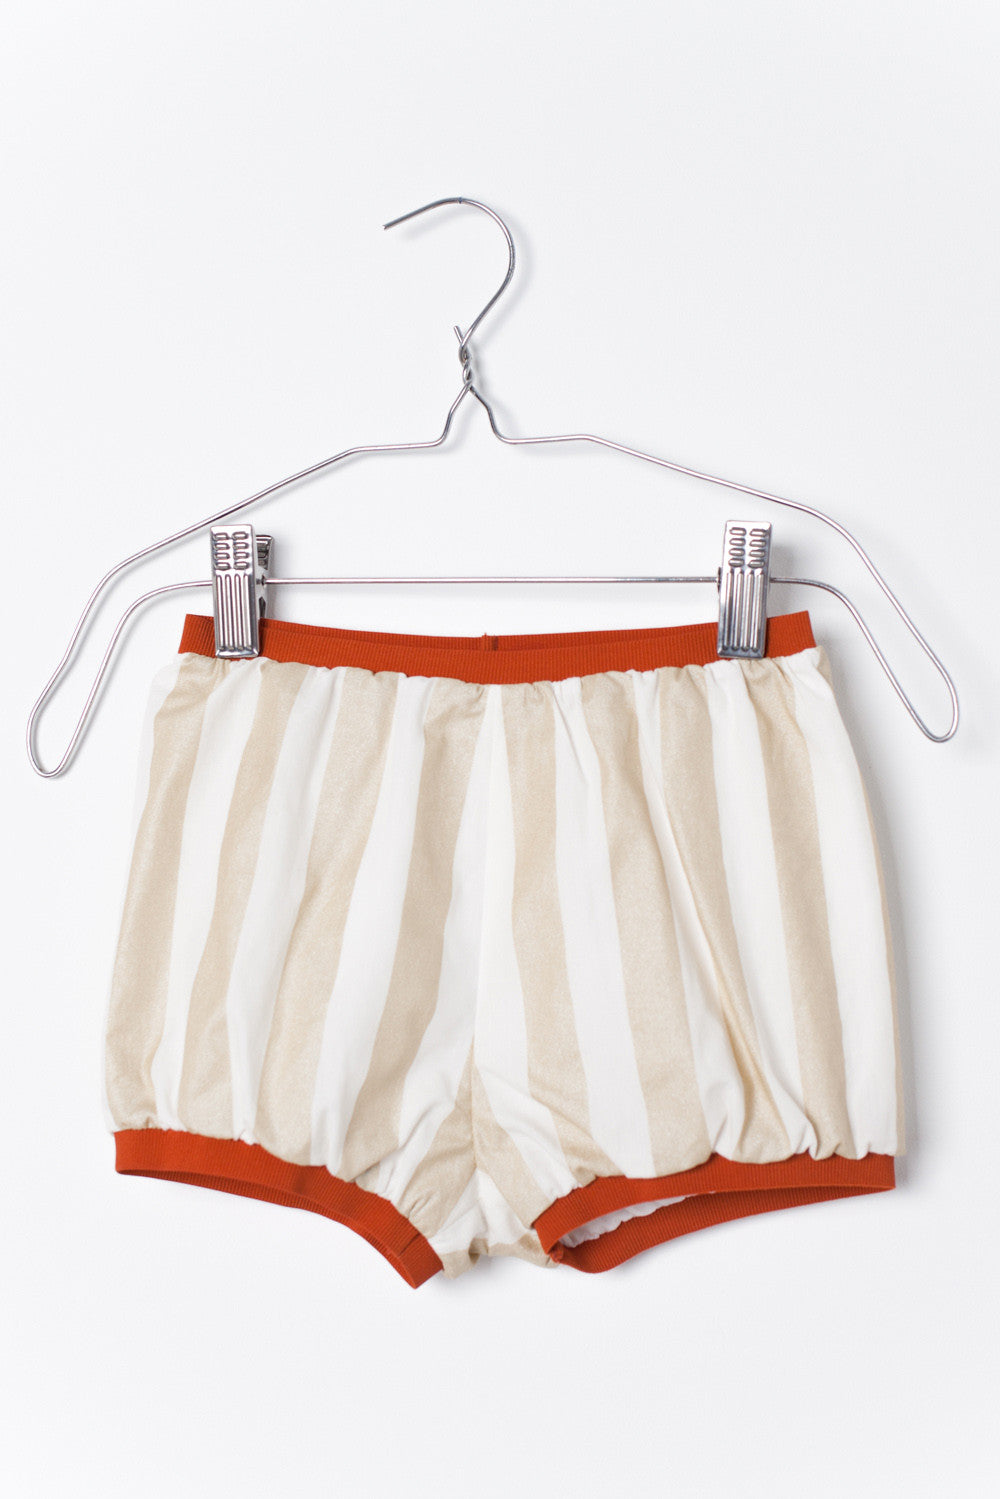 Motoreta Gold Stripes/Trimmed Bloomers - Ladida